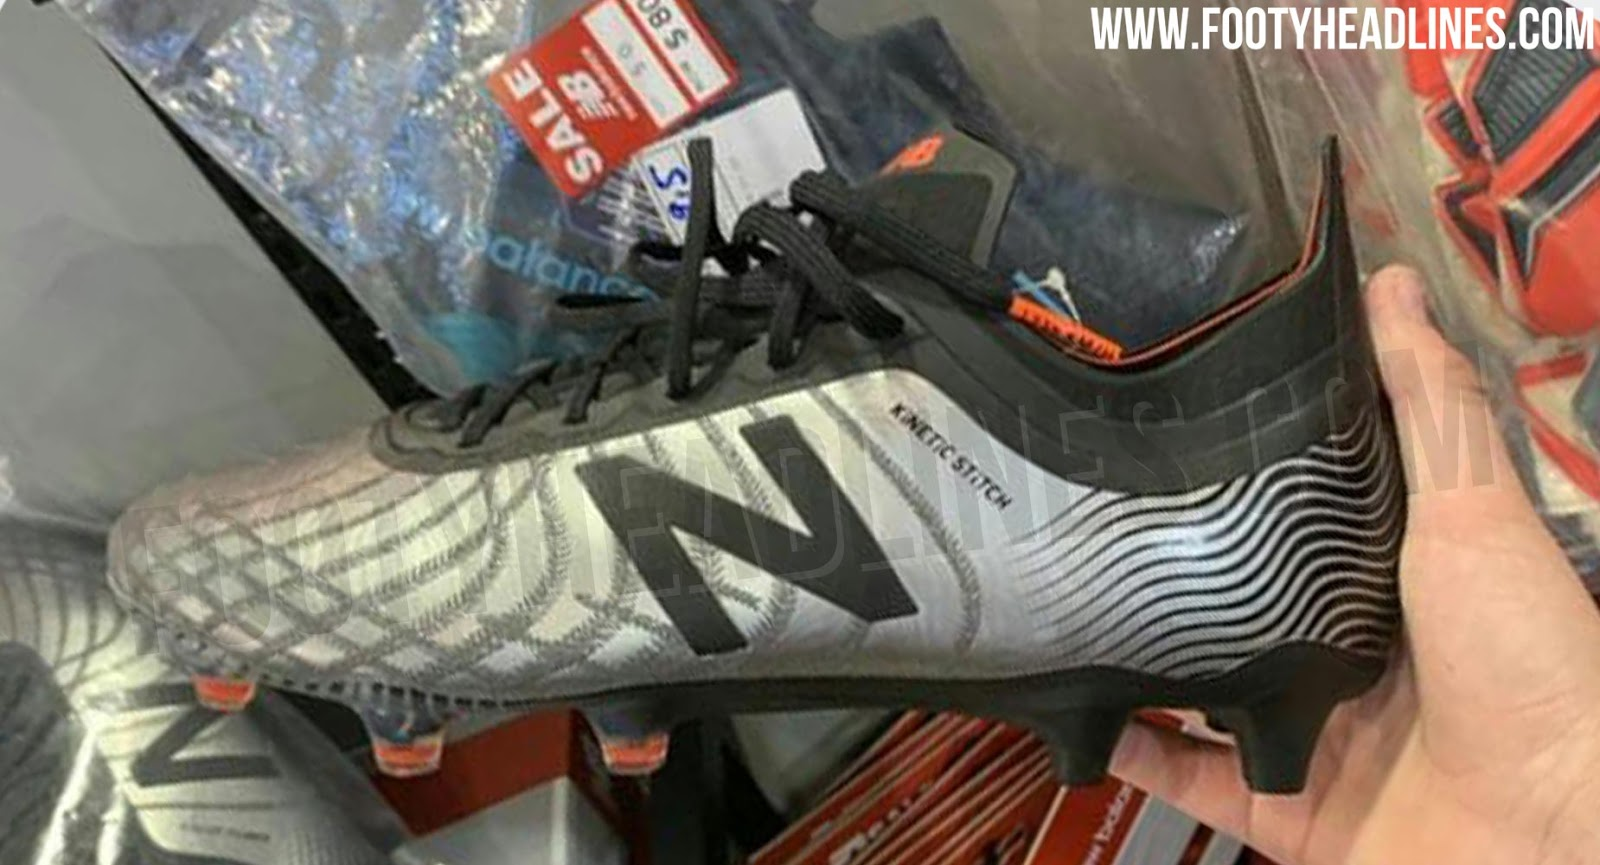 e6142fc23 The lower-tier version of the blackout New Balance Tekela 2.0 football boot  comes with a more shiny